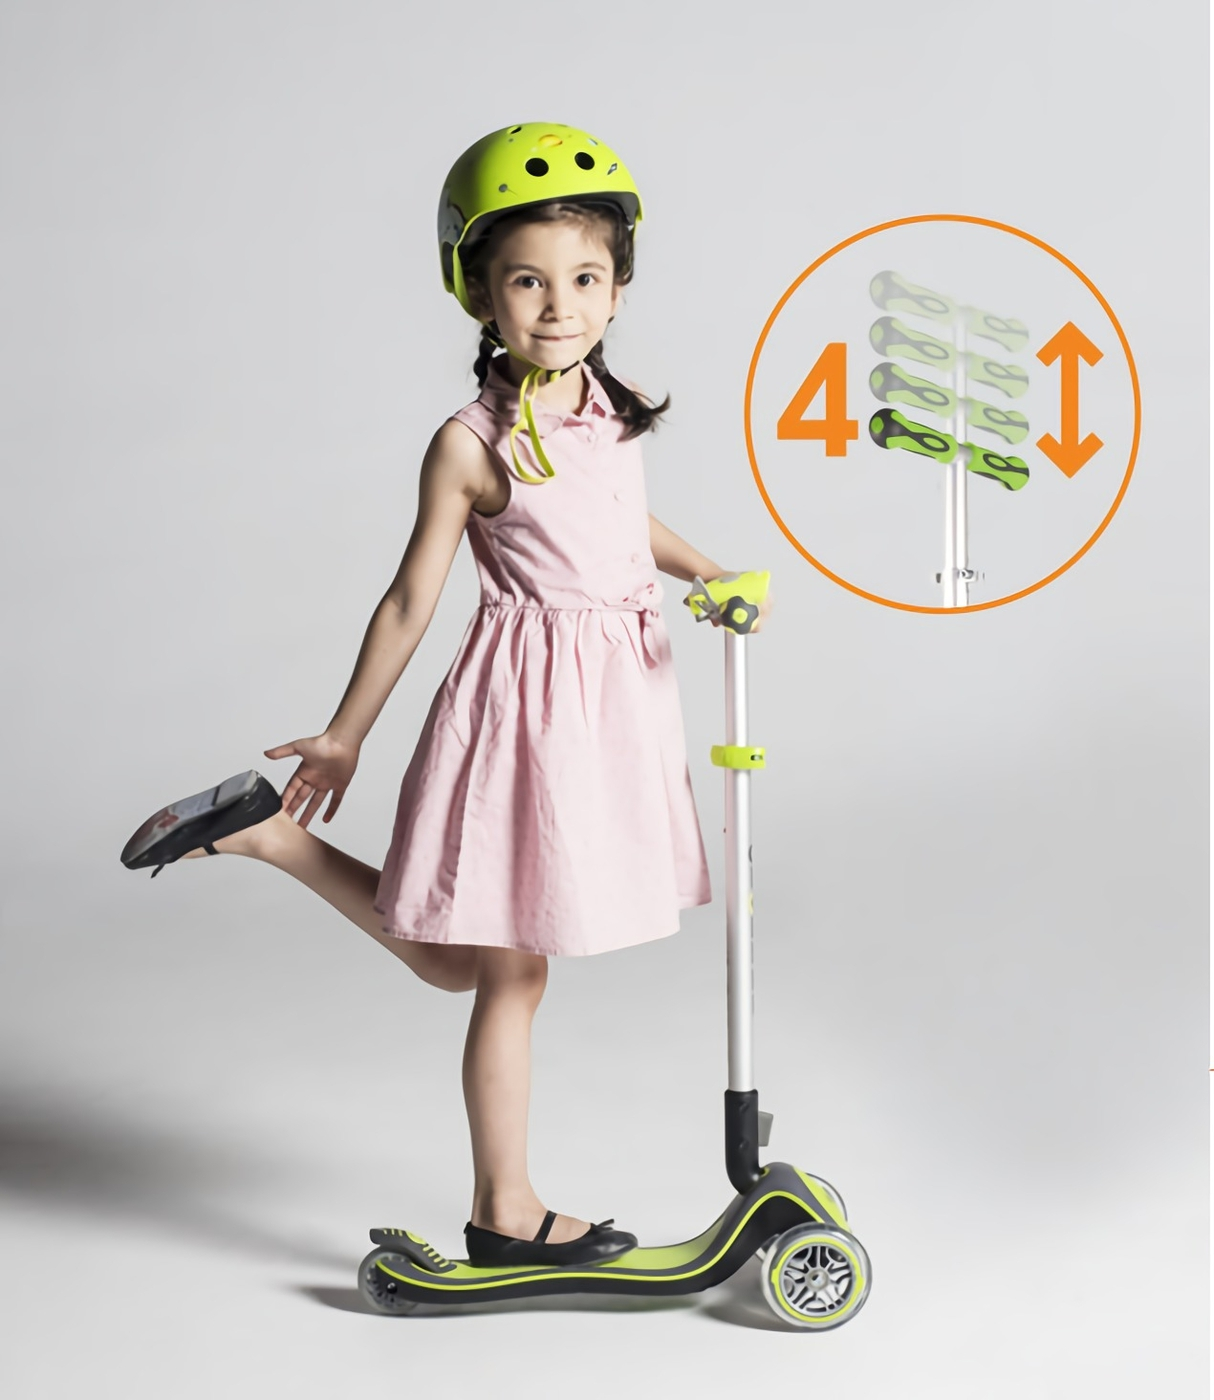 adjustable scooters with light-up wheels